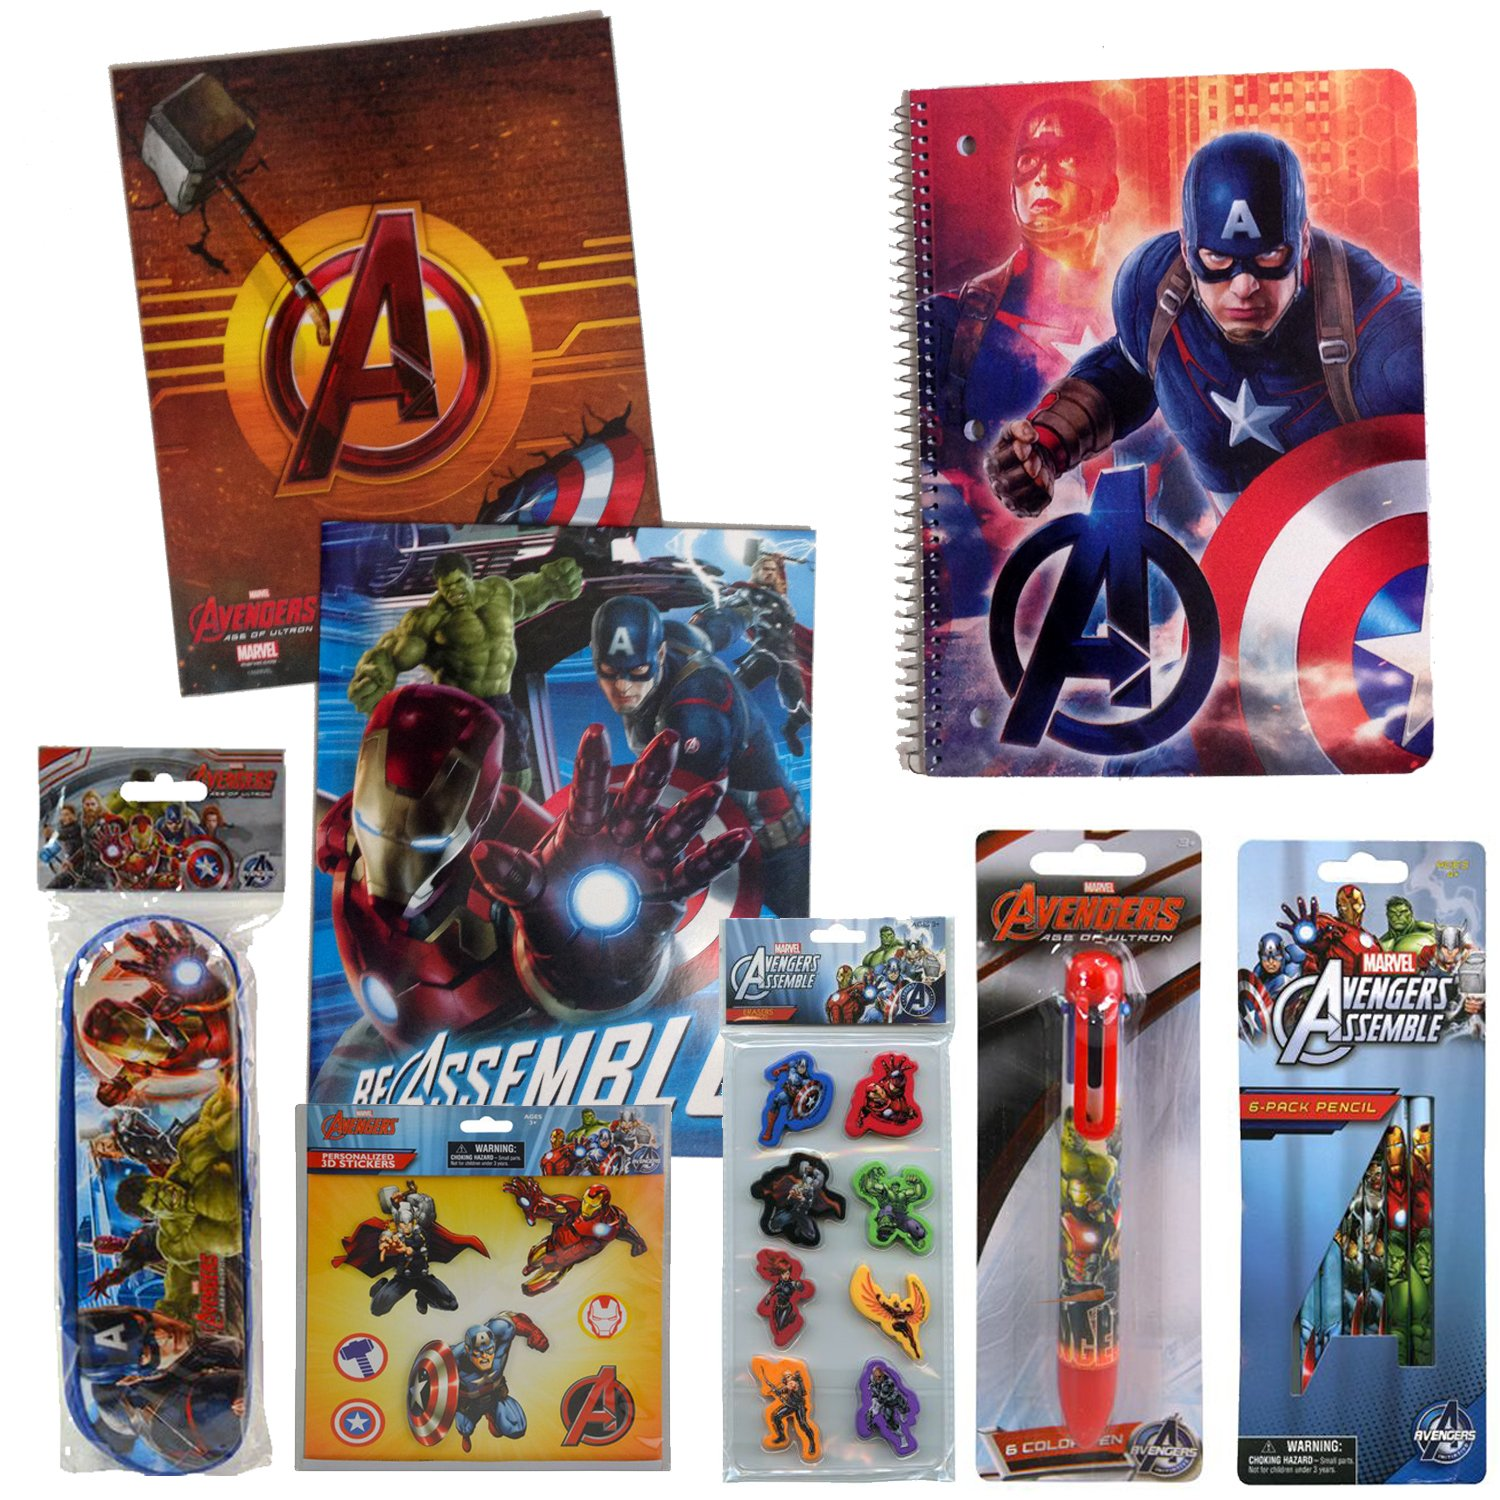 Marvel Avengers Back to School Supplies Bundle - 2 Folders, 1 Notebook, Pencils, Erasers, 6-Color Pen, Pencil Pouch & Stickers